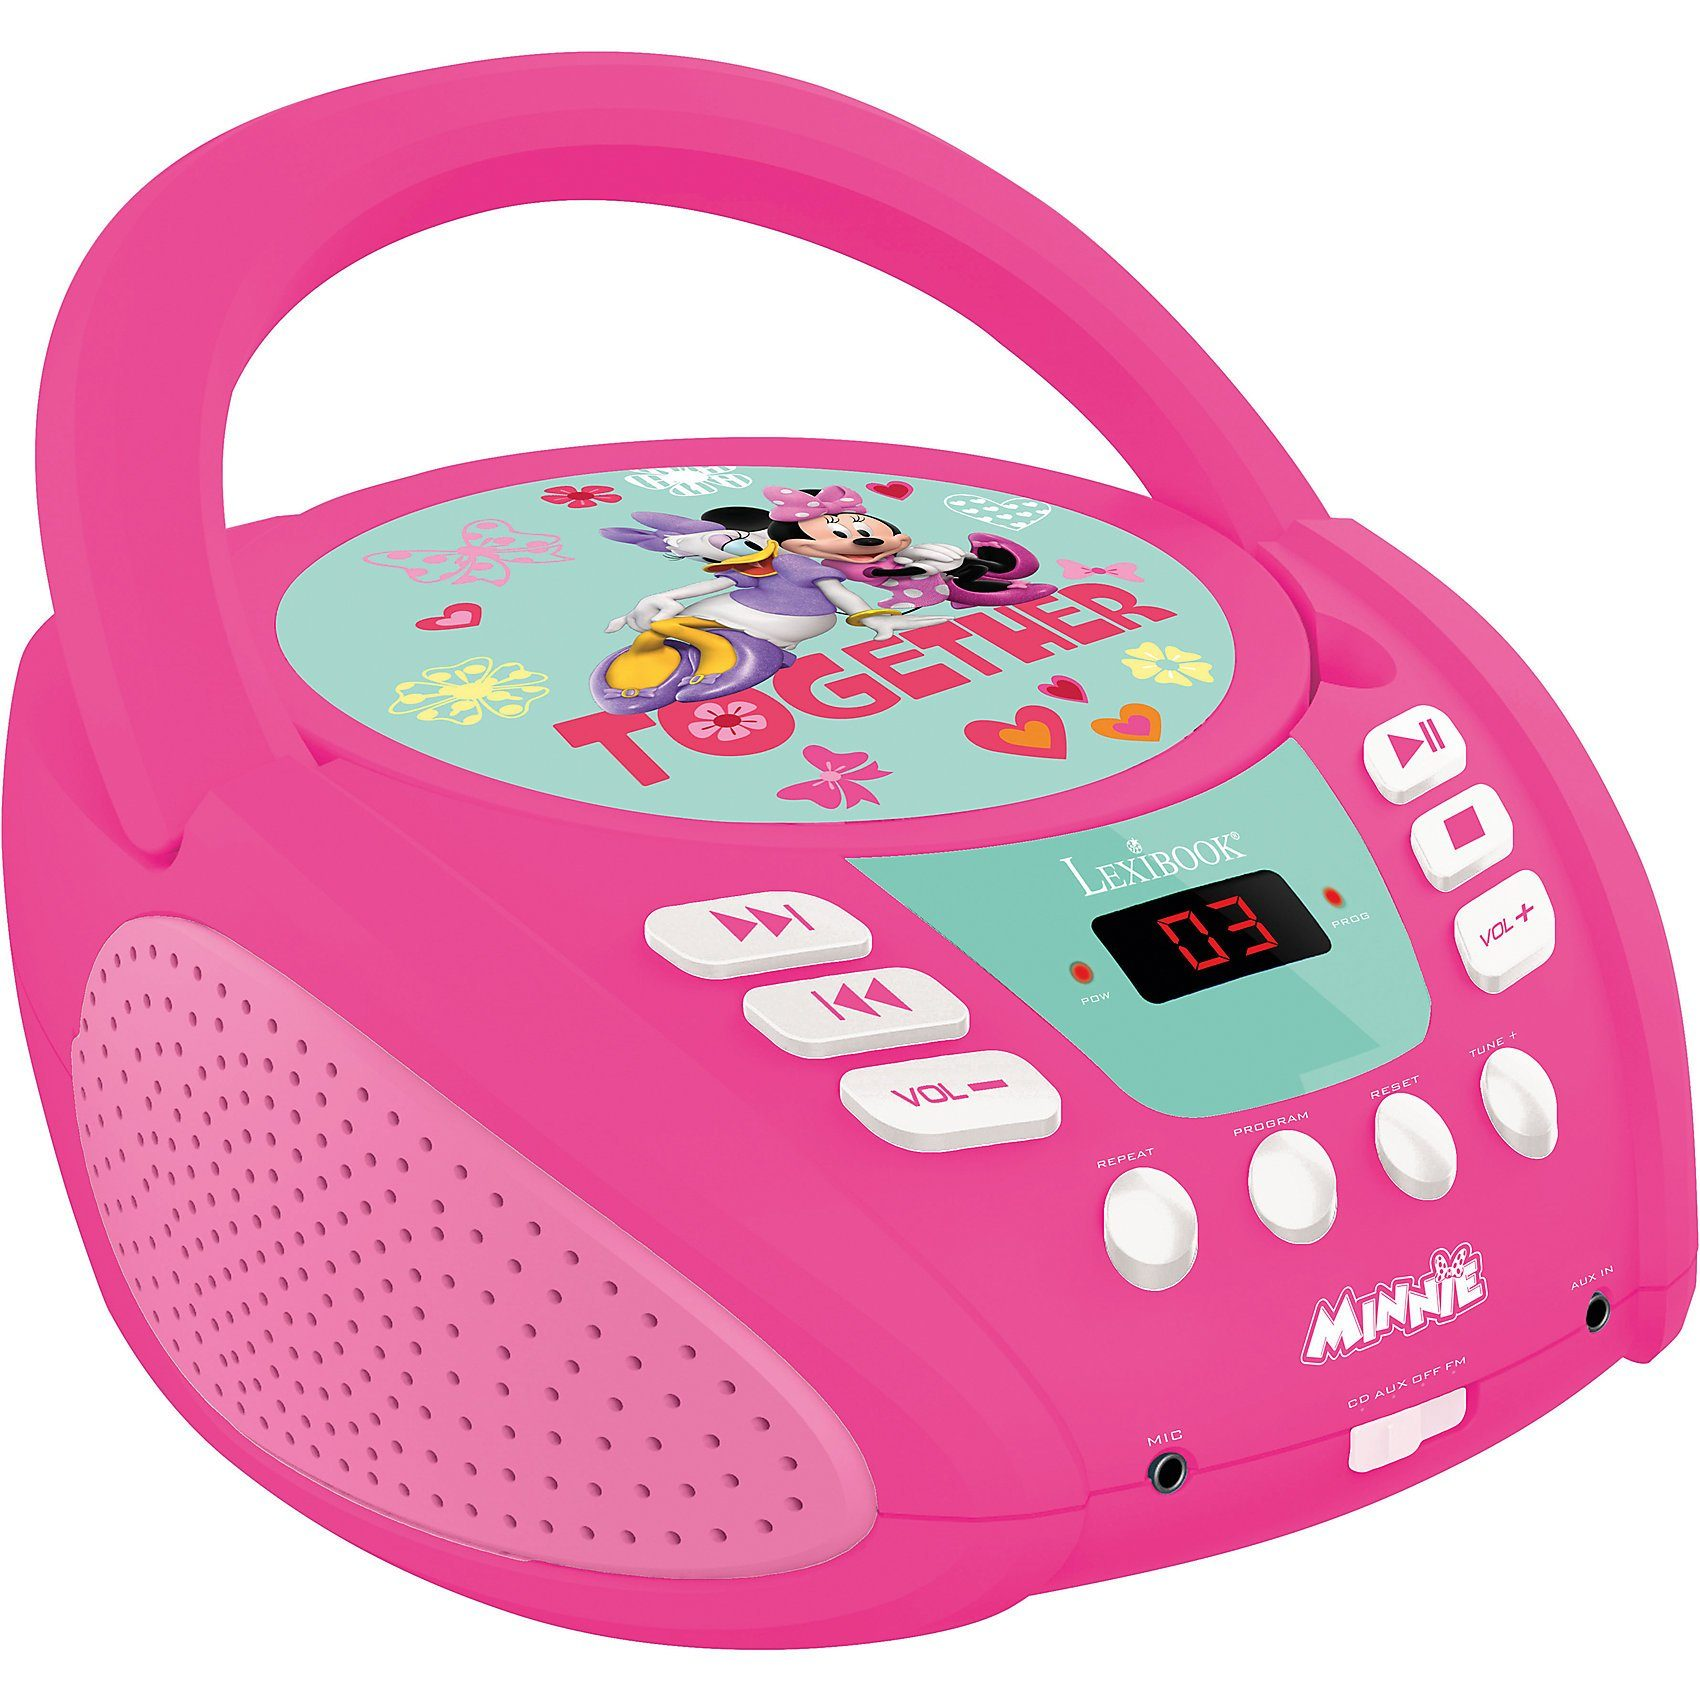 LEXIBOOK Minnie CD-Player mit Radio (neues Design)